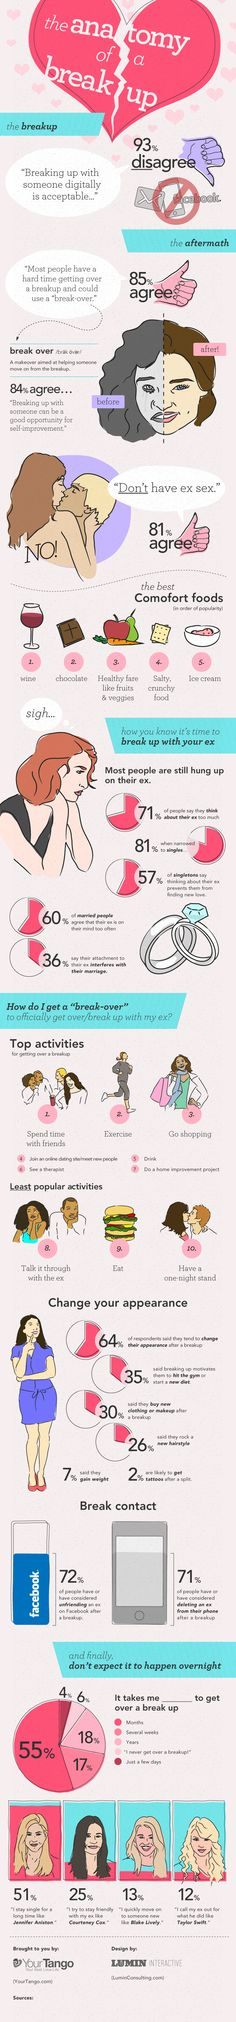 The Anatomy Of A Breakup [INFOGRAPHIC] #anatomy #breakup